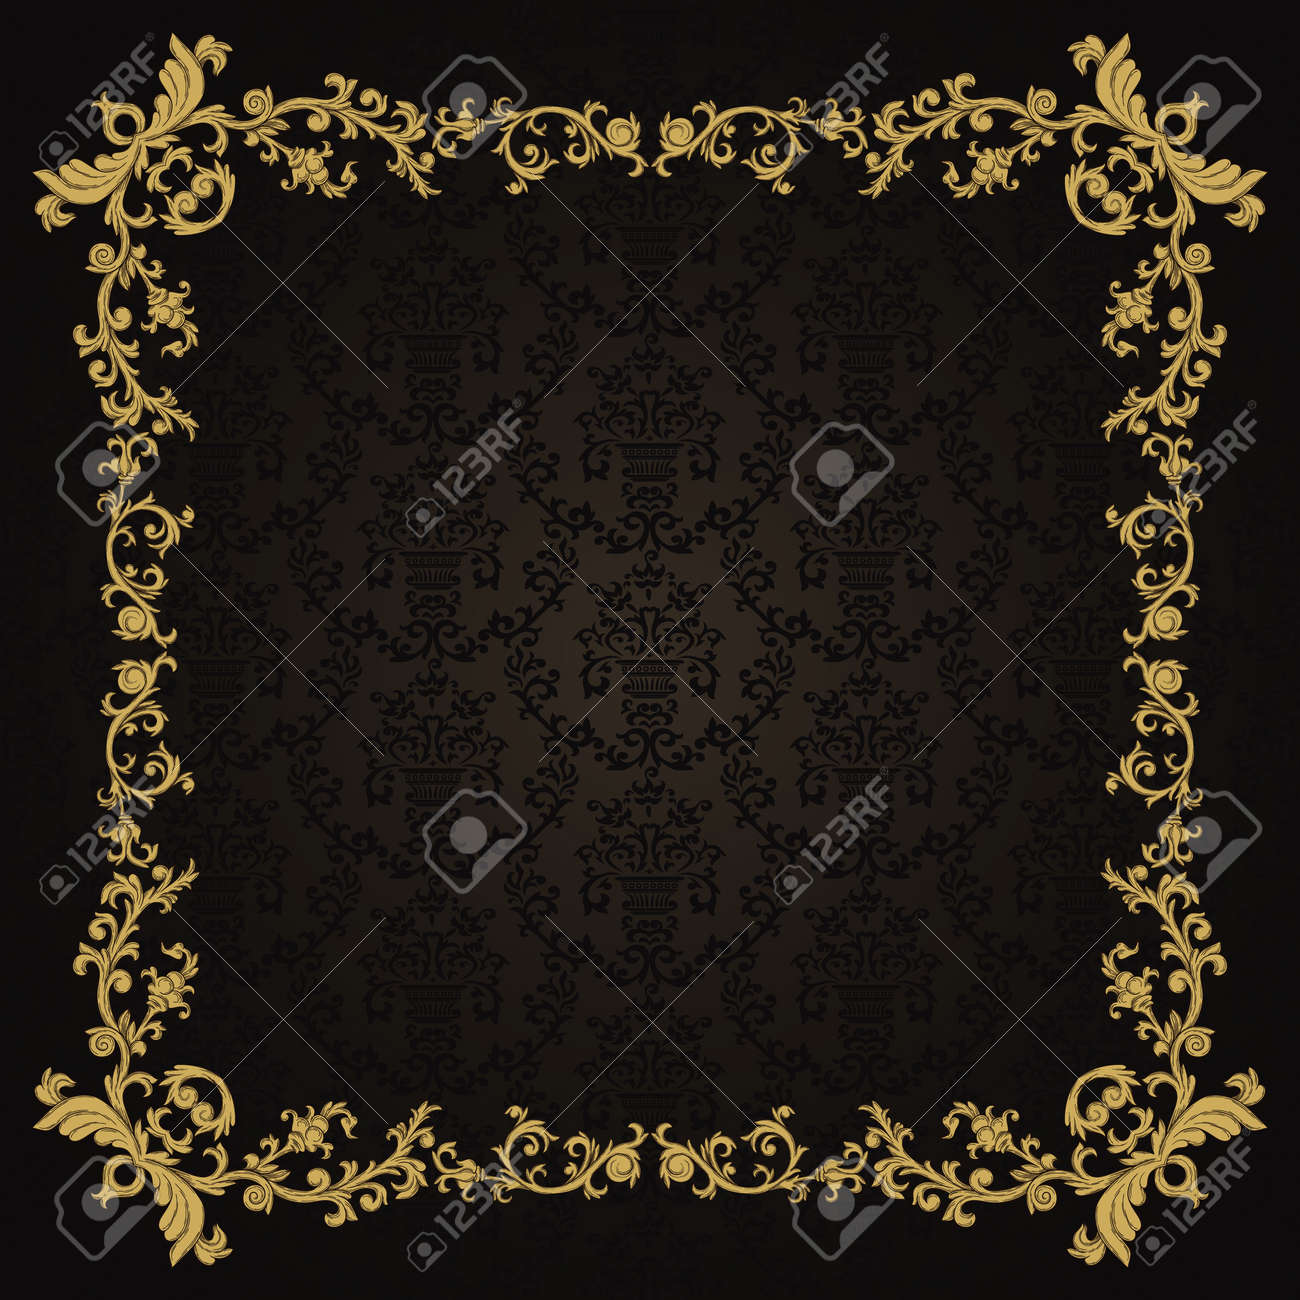 Vintage background with damask pattern in retro style Stock Vector - 12217779